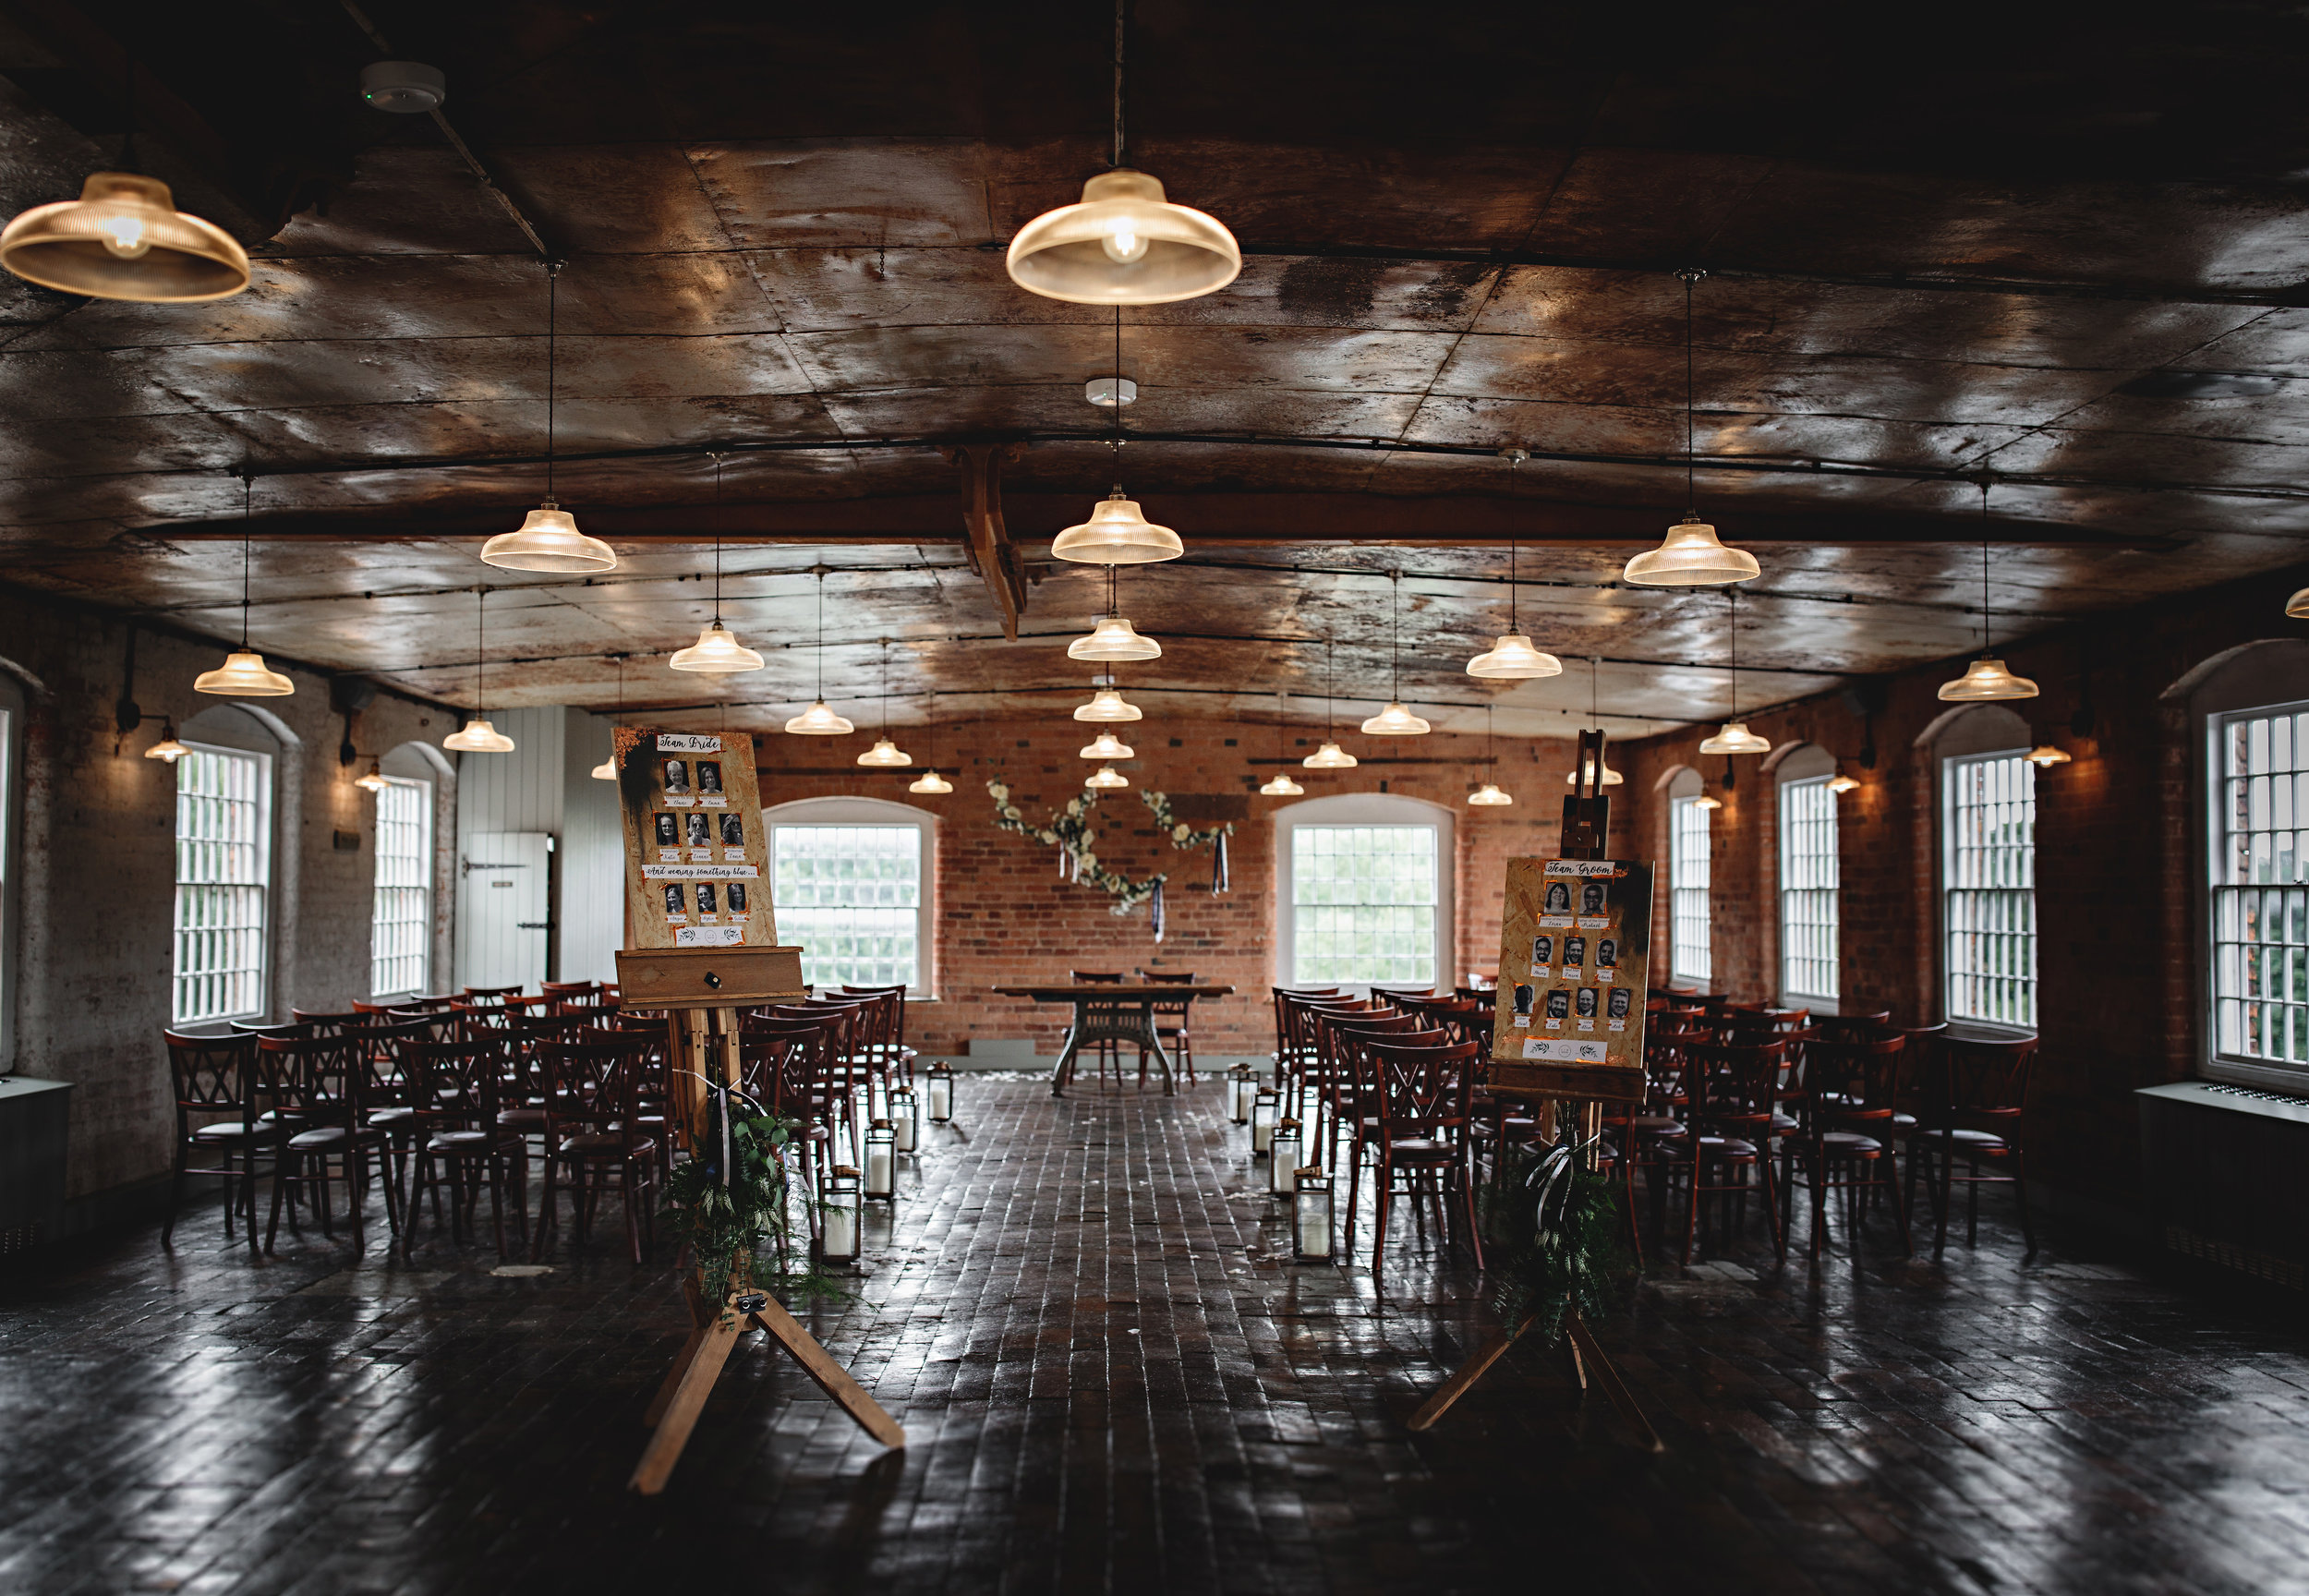 Jesus Peiro For A Chic And Modern Industrial Wedding At The West Mill 8.jpg